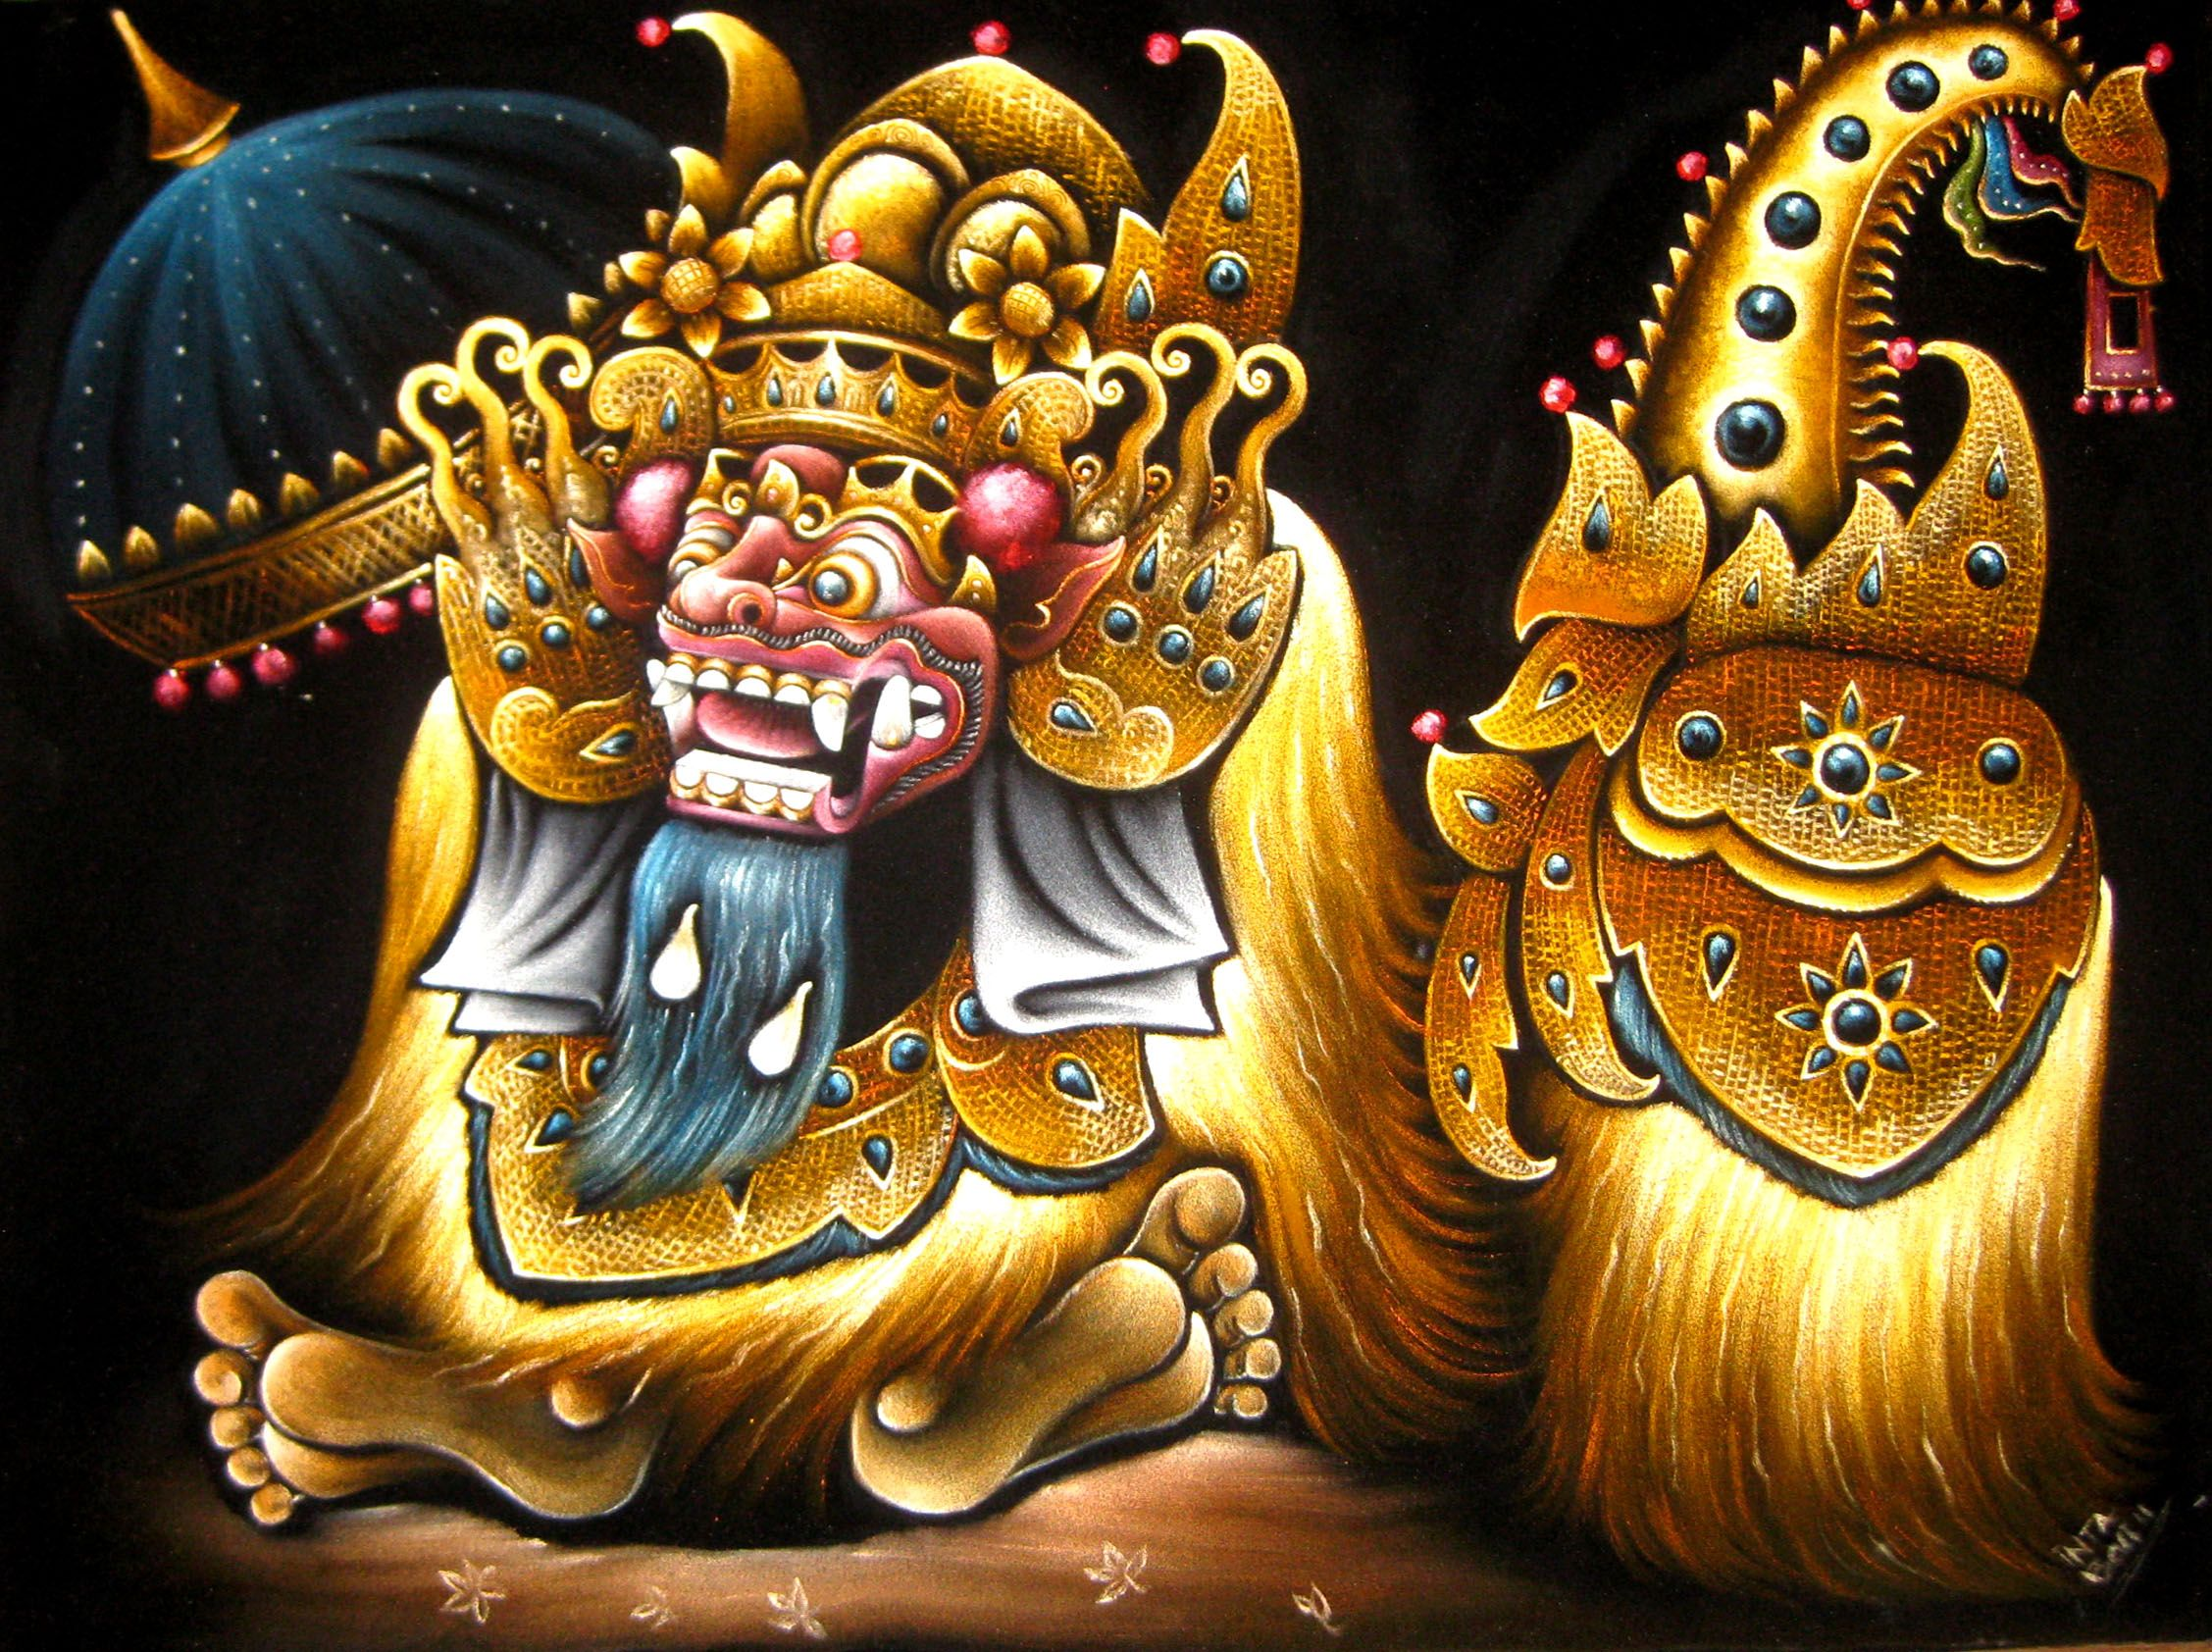 barong wallpapers top free barong backgrounds wallpaperaccess barong wallpapers top free barong